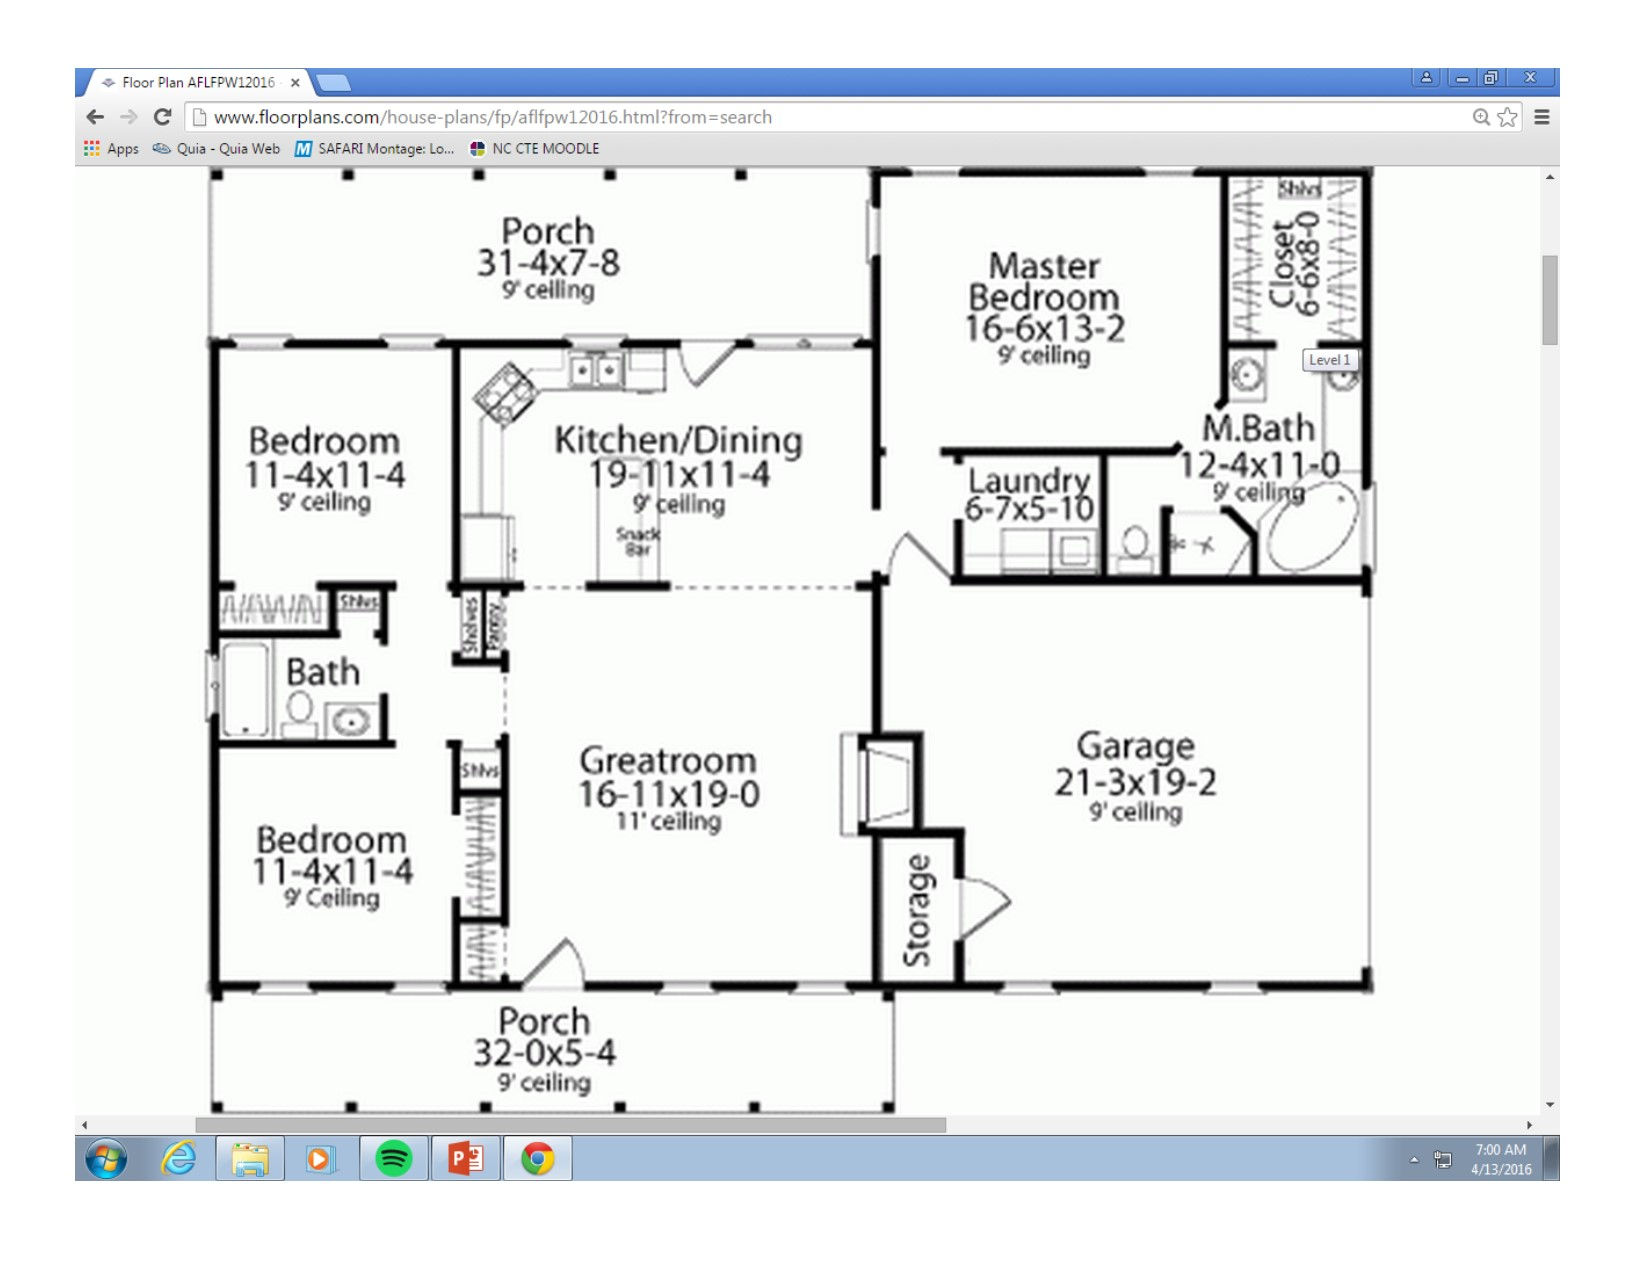 Drafting II(Architecture) on revit design, revit floor plans with dimensions, revit sample plans, 1920s craftsman bungalow house plans, revit architecture, adobe style homes floor plans, revit home, revit 2013 portfolios, small revit floor plans,